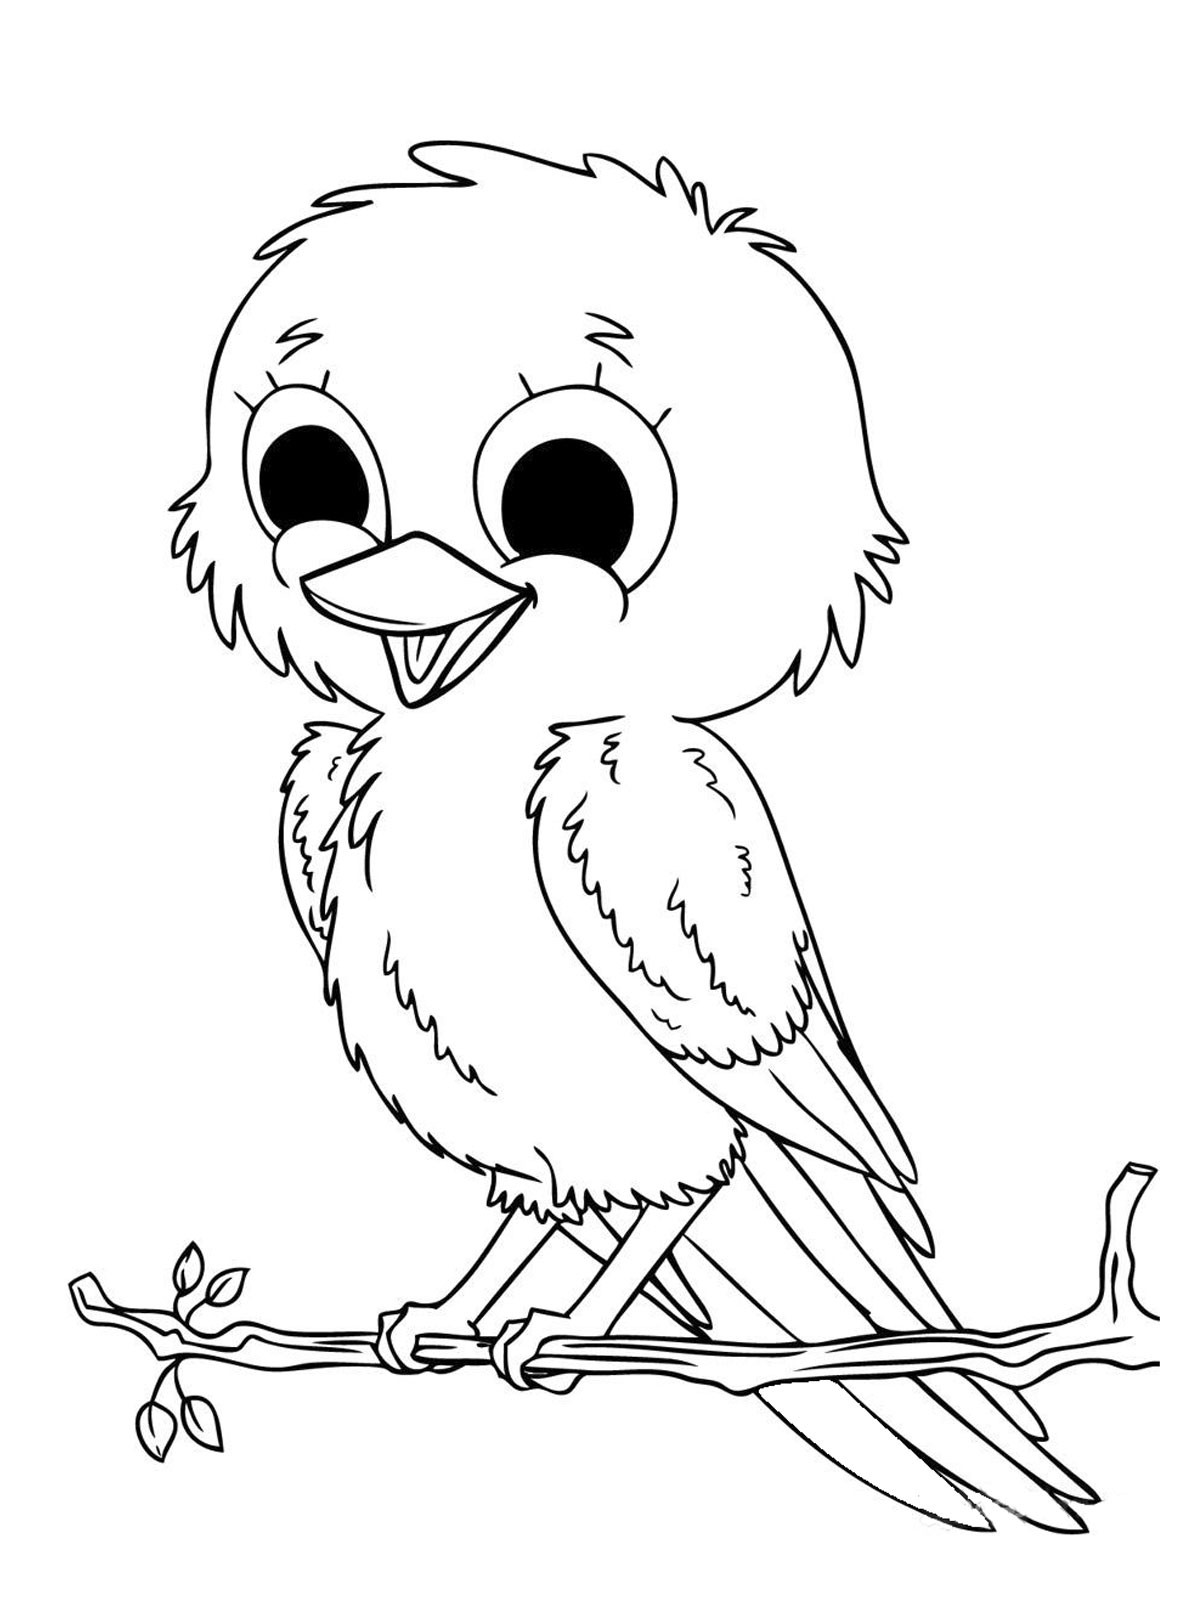 Online Coloring Pages For Girls  Free Coloring Pages For Girls Cute Image 5 Gianfreda